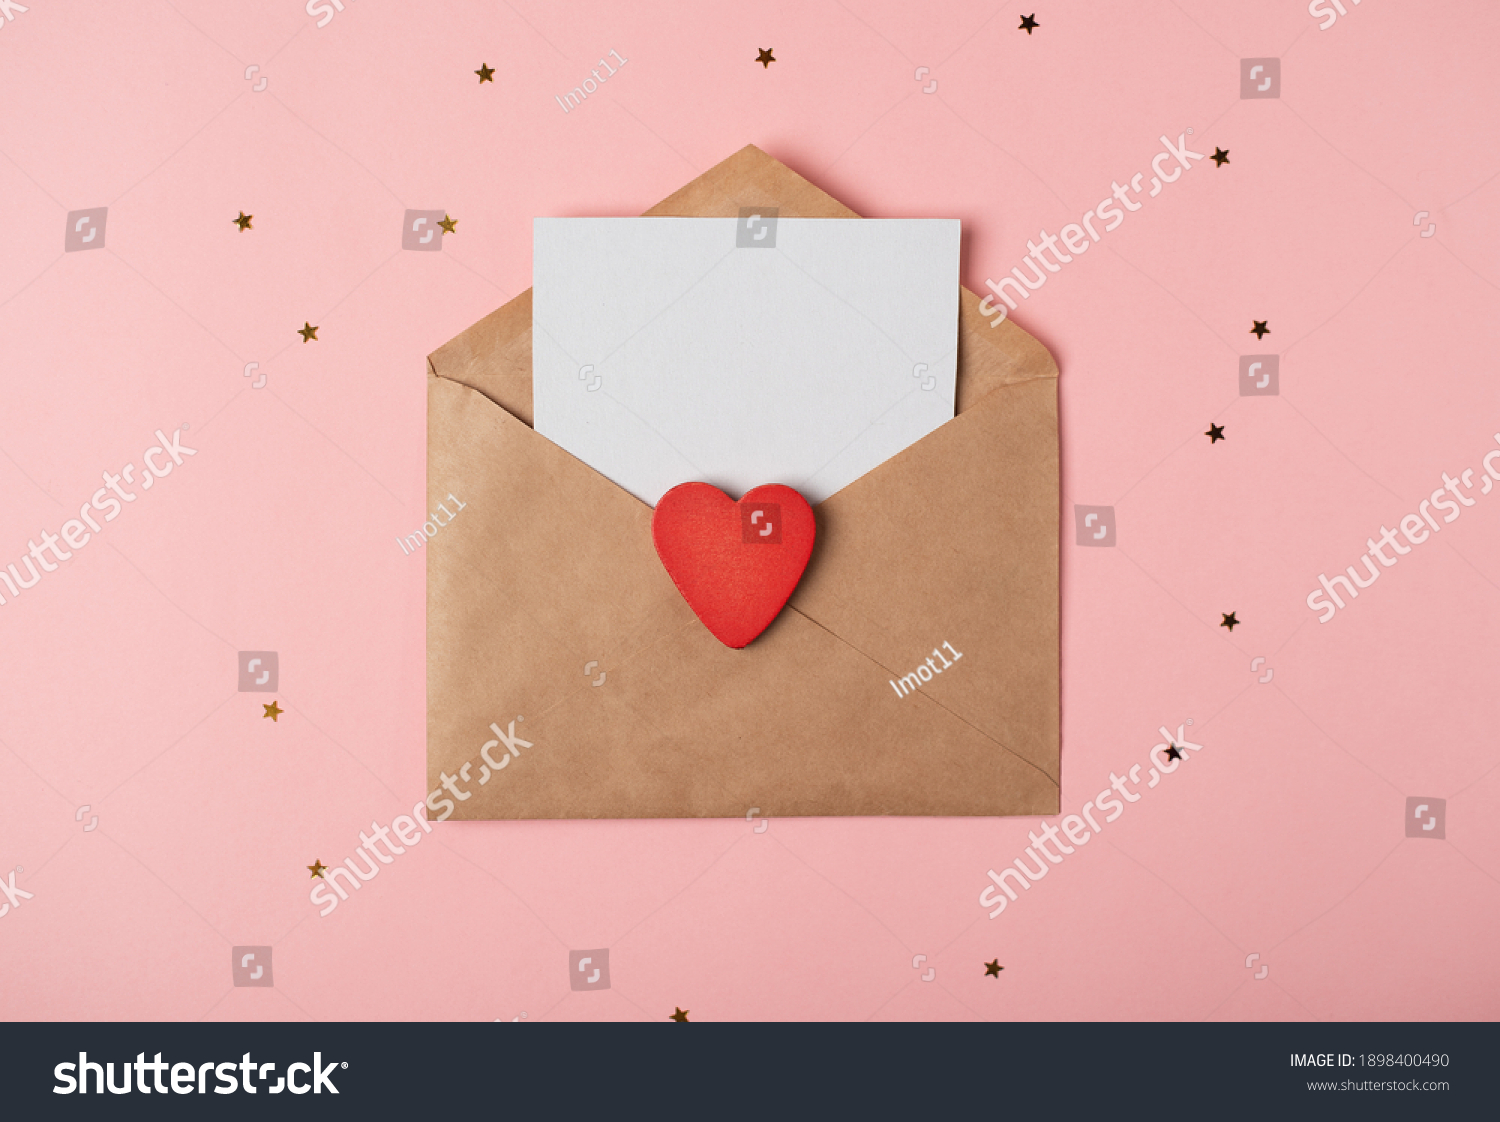 Craft envelope with a blank sheet of paper inside and red wooden heart on the rose background. Romantic love letter for the Valentine's day concept. Space for text. #1898400490